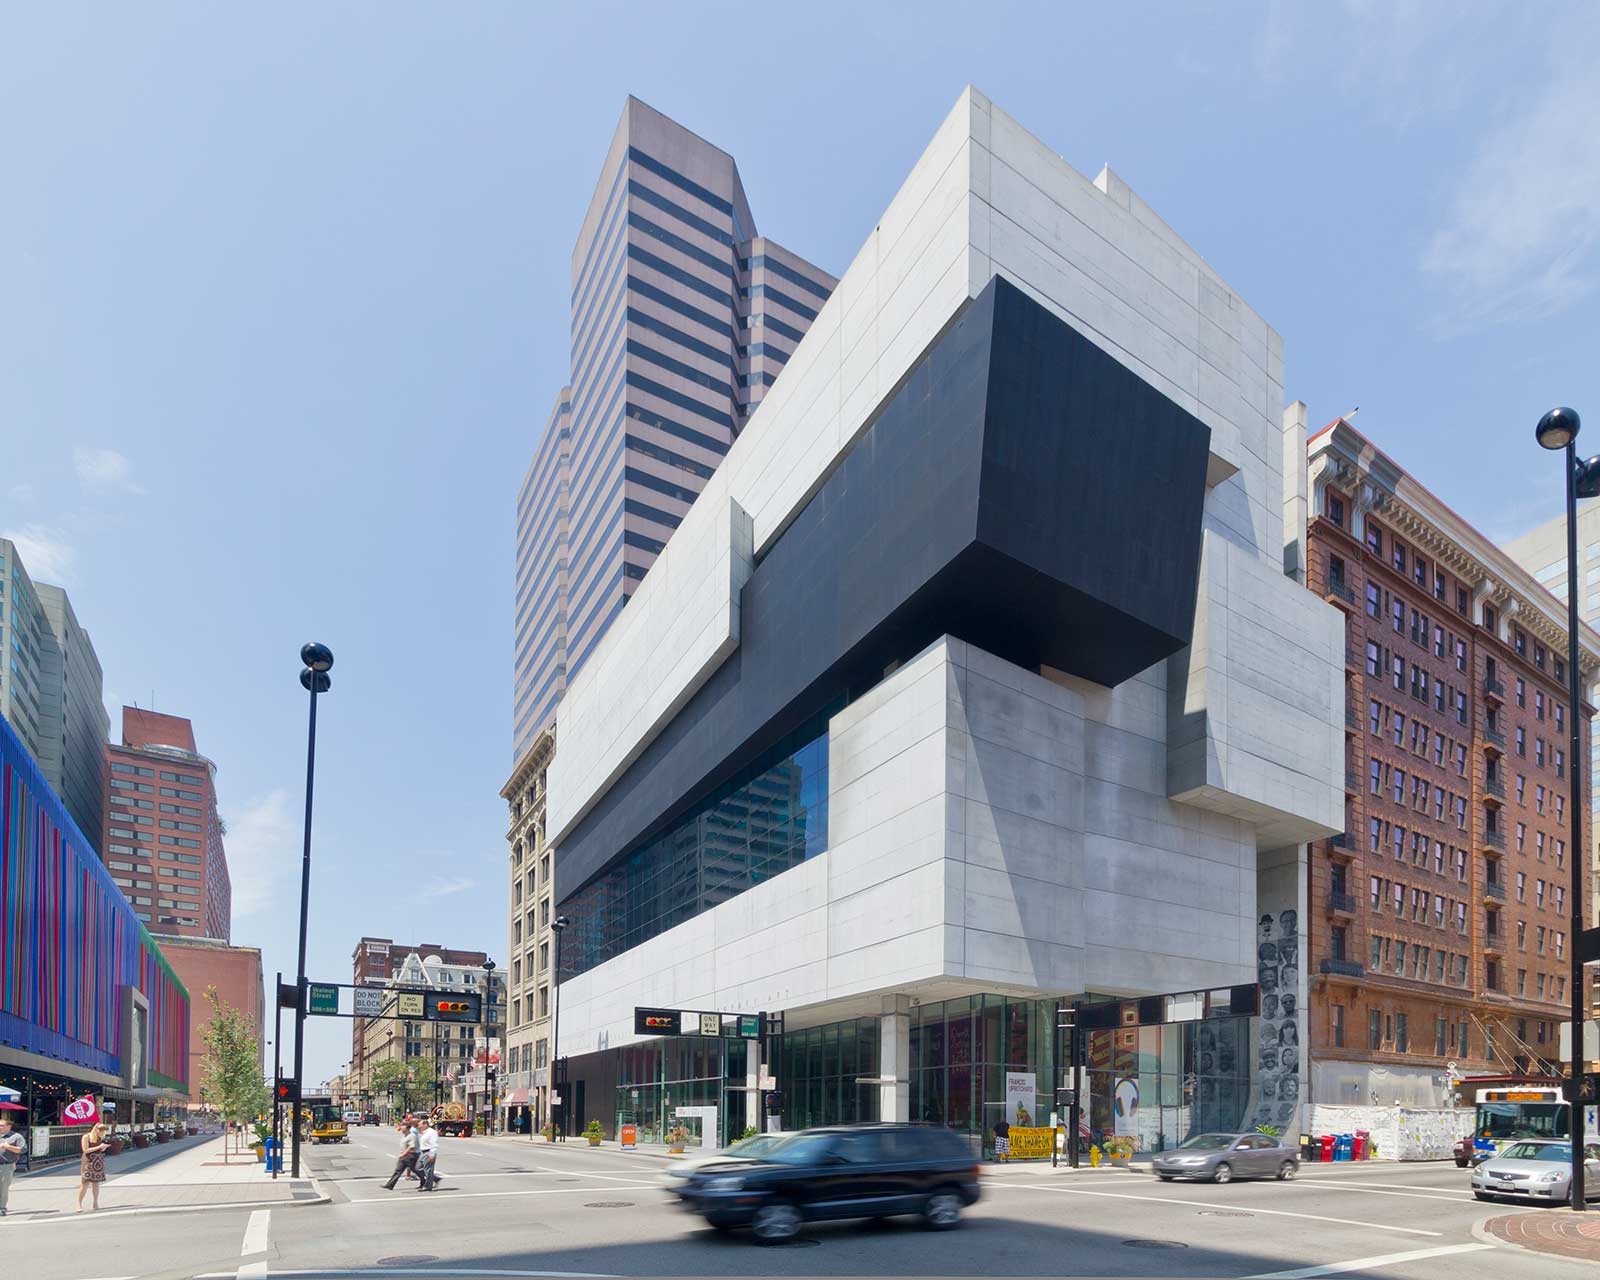 Southeast view of the Rosenthal Center for Contemporary Art.